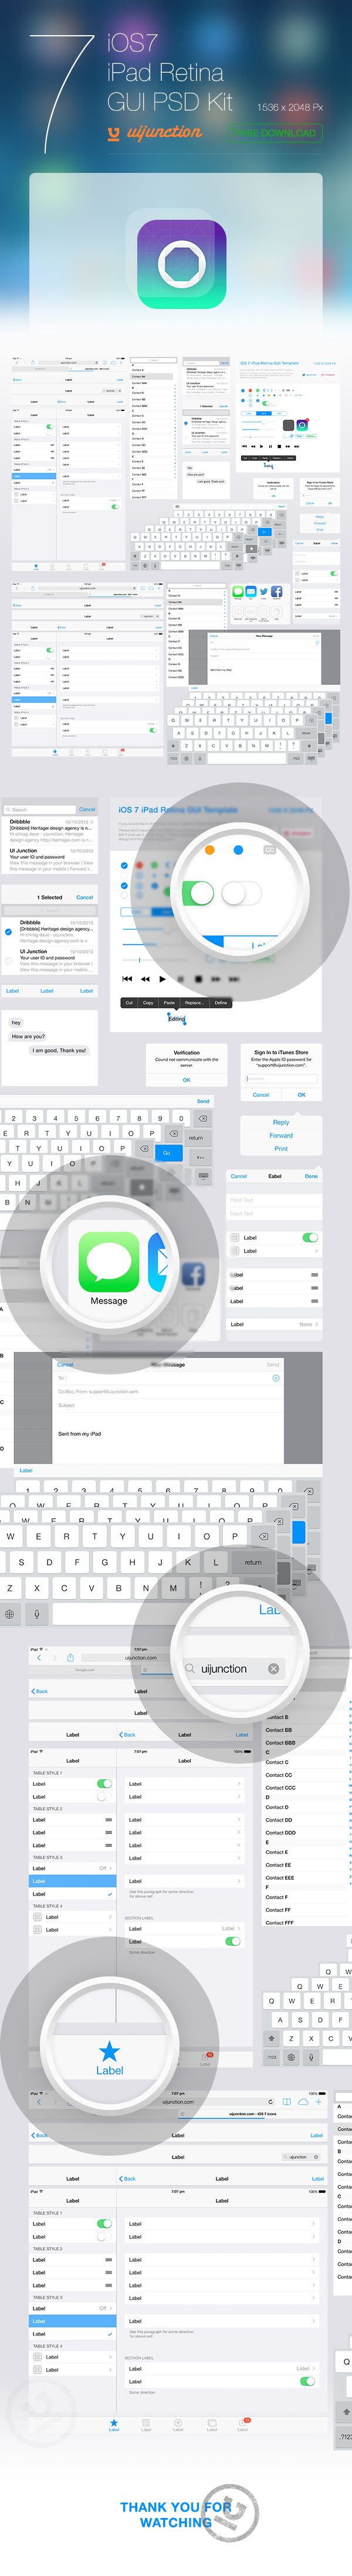 iOS 7 iPad Retina GUI PSD Kit by Chirag , via Behance